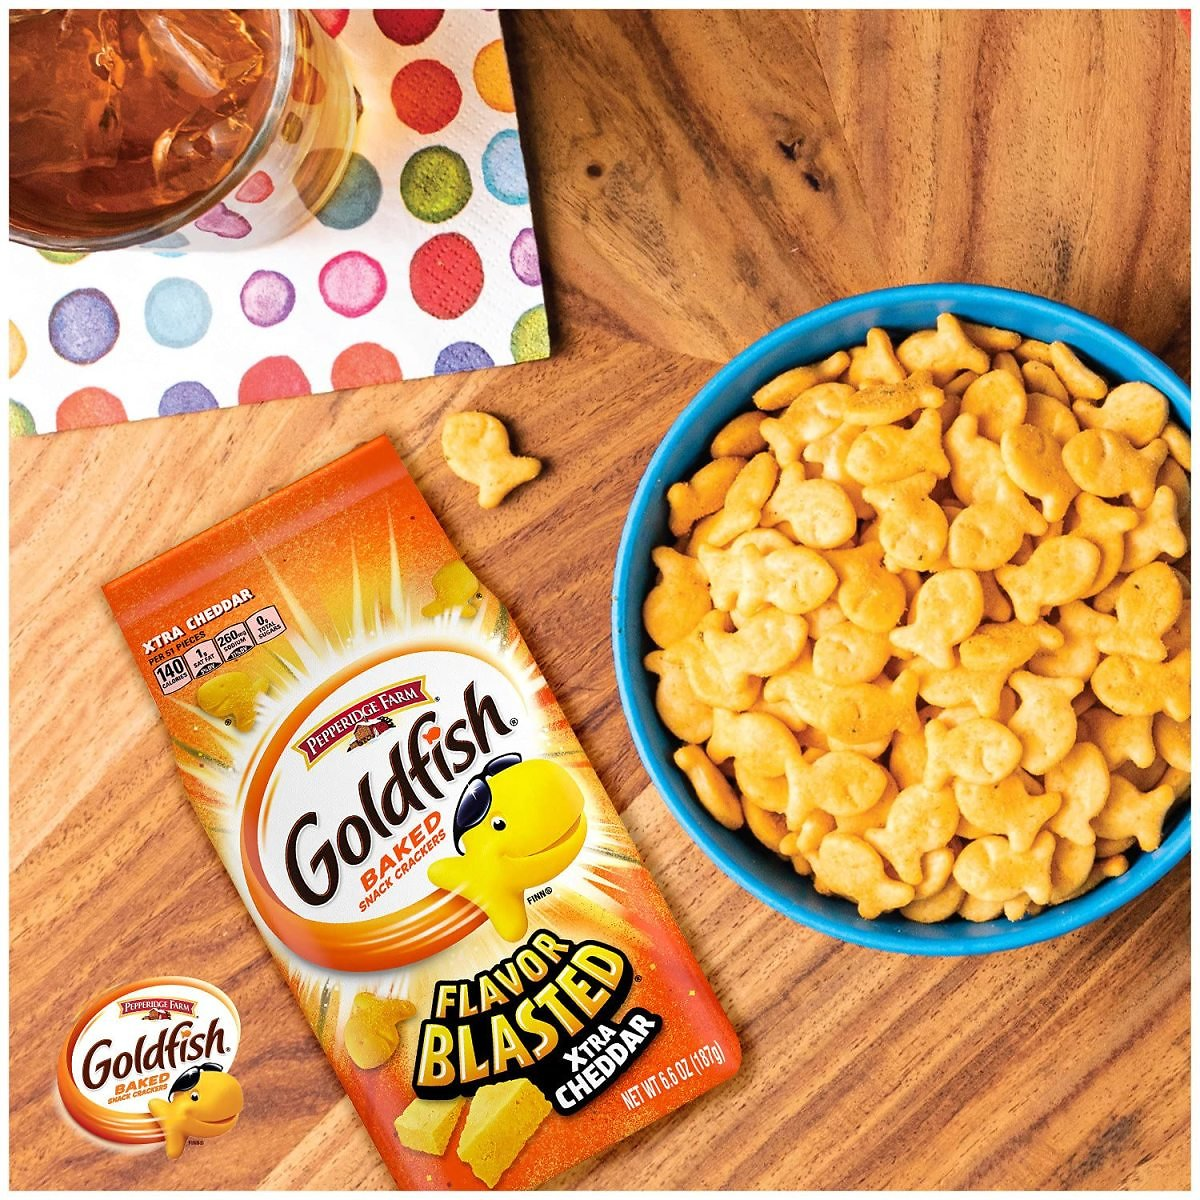 Pepperidge Farm Goldfish Flavor Blasted Xtra Cheddar Crackers, (Pack of 6)